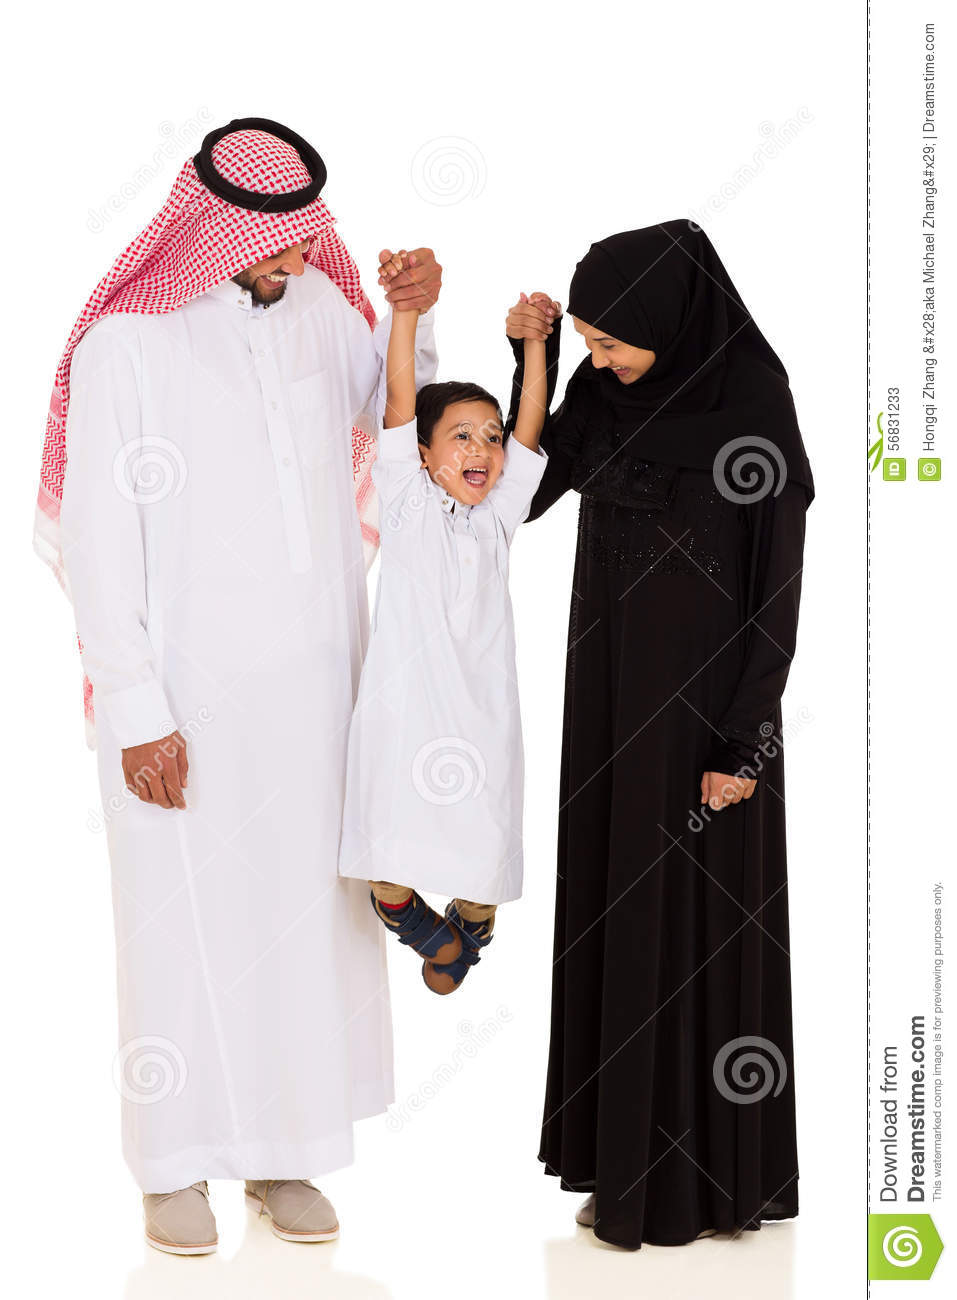 Muslim People Clipart